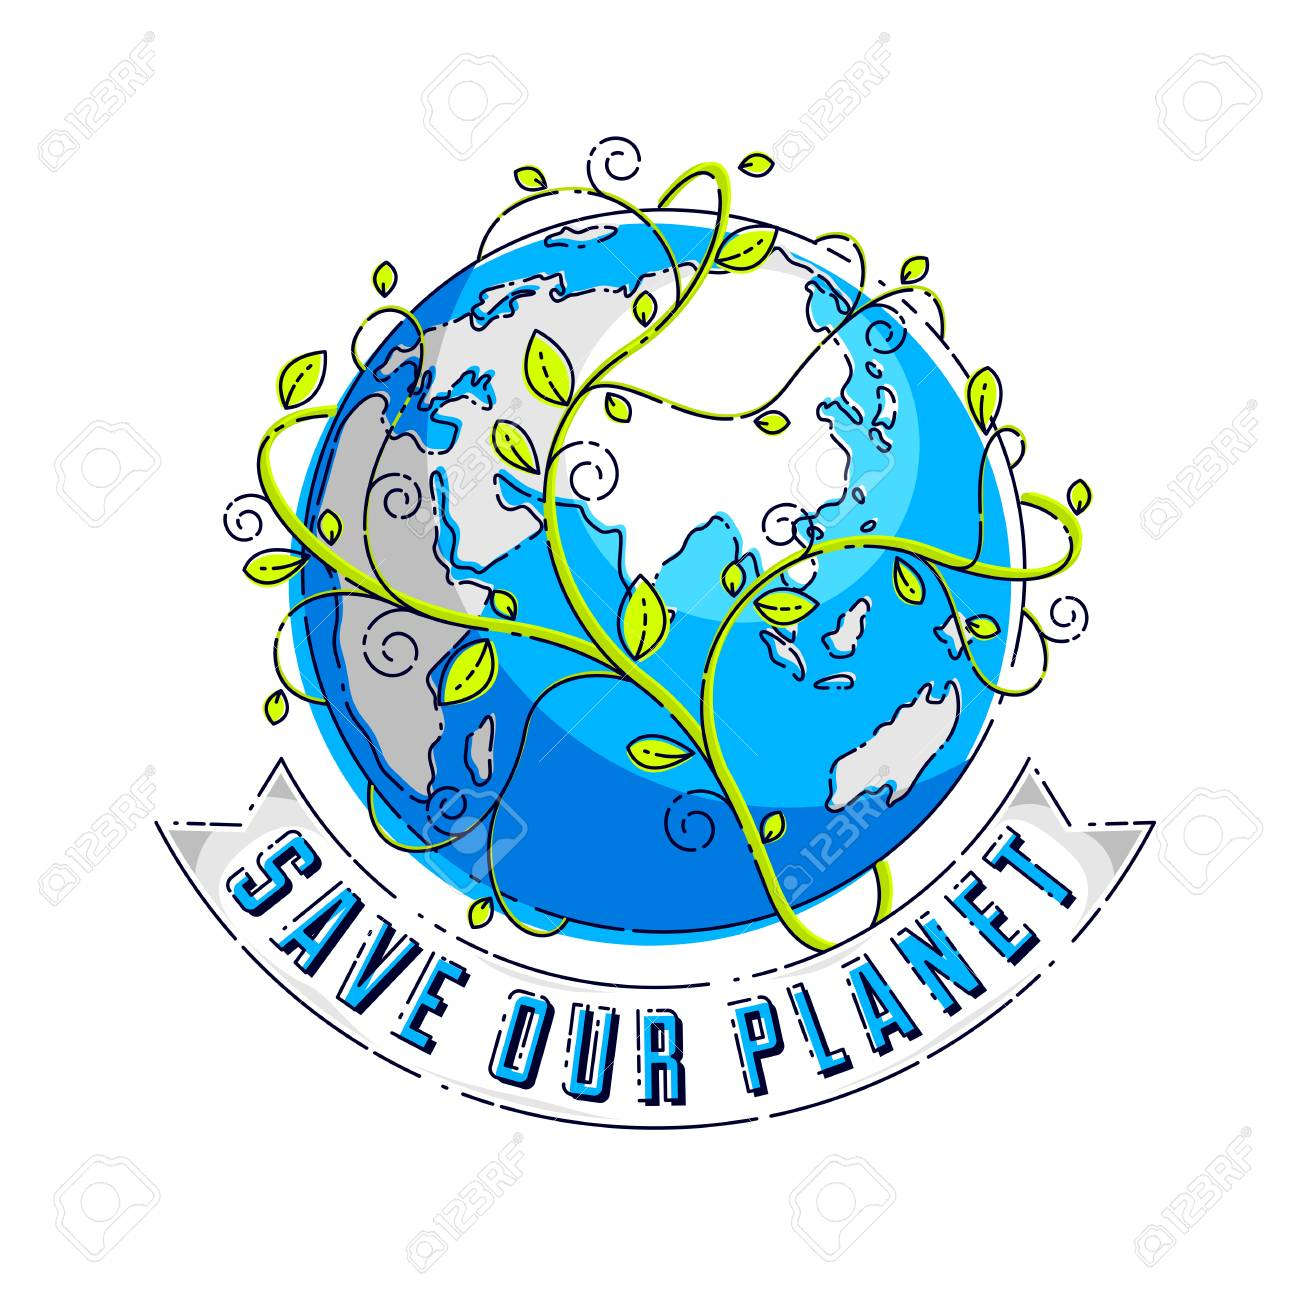 Save Our Planet Concept, Eco Ecology, Earth Climate Changes.